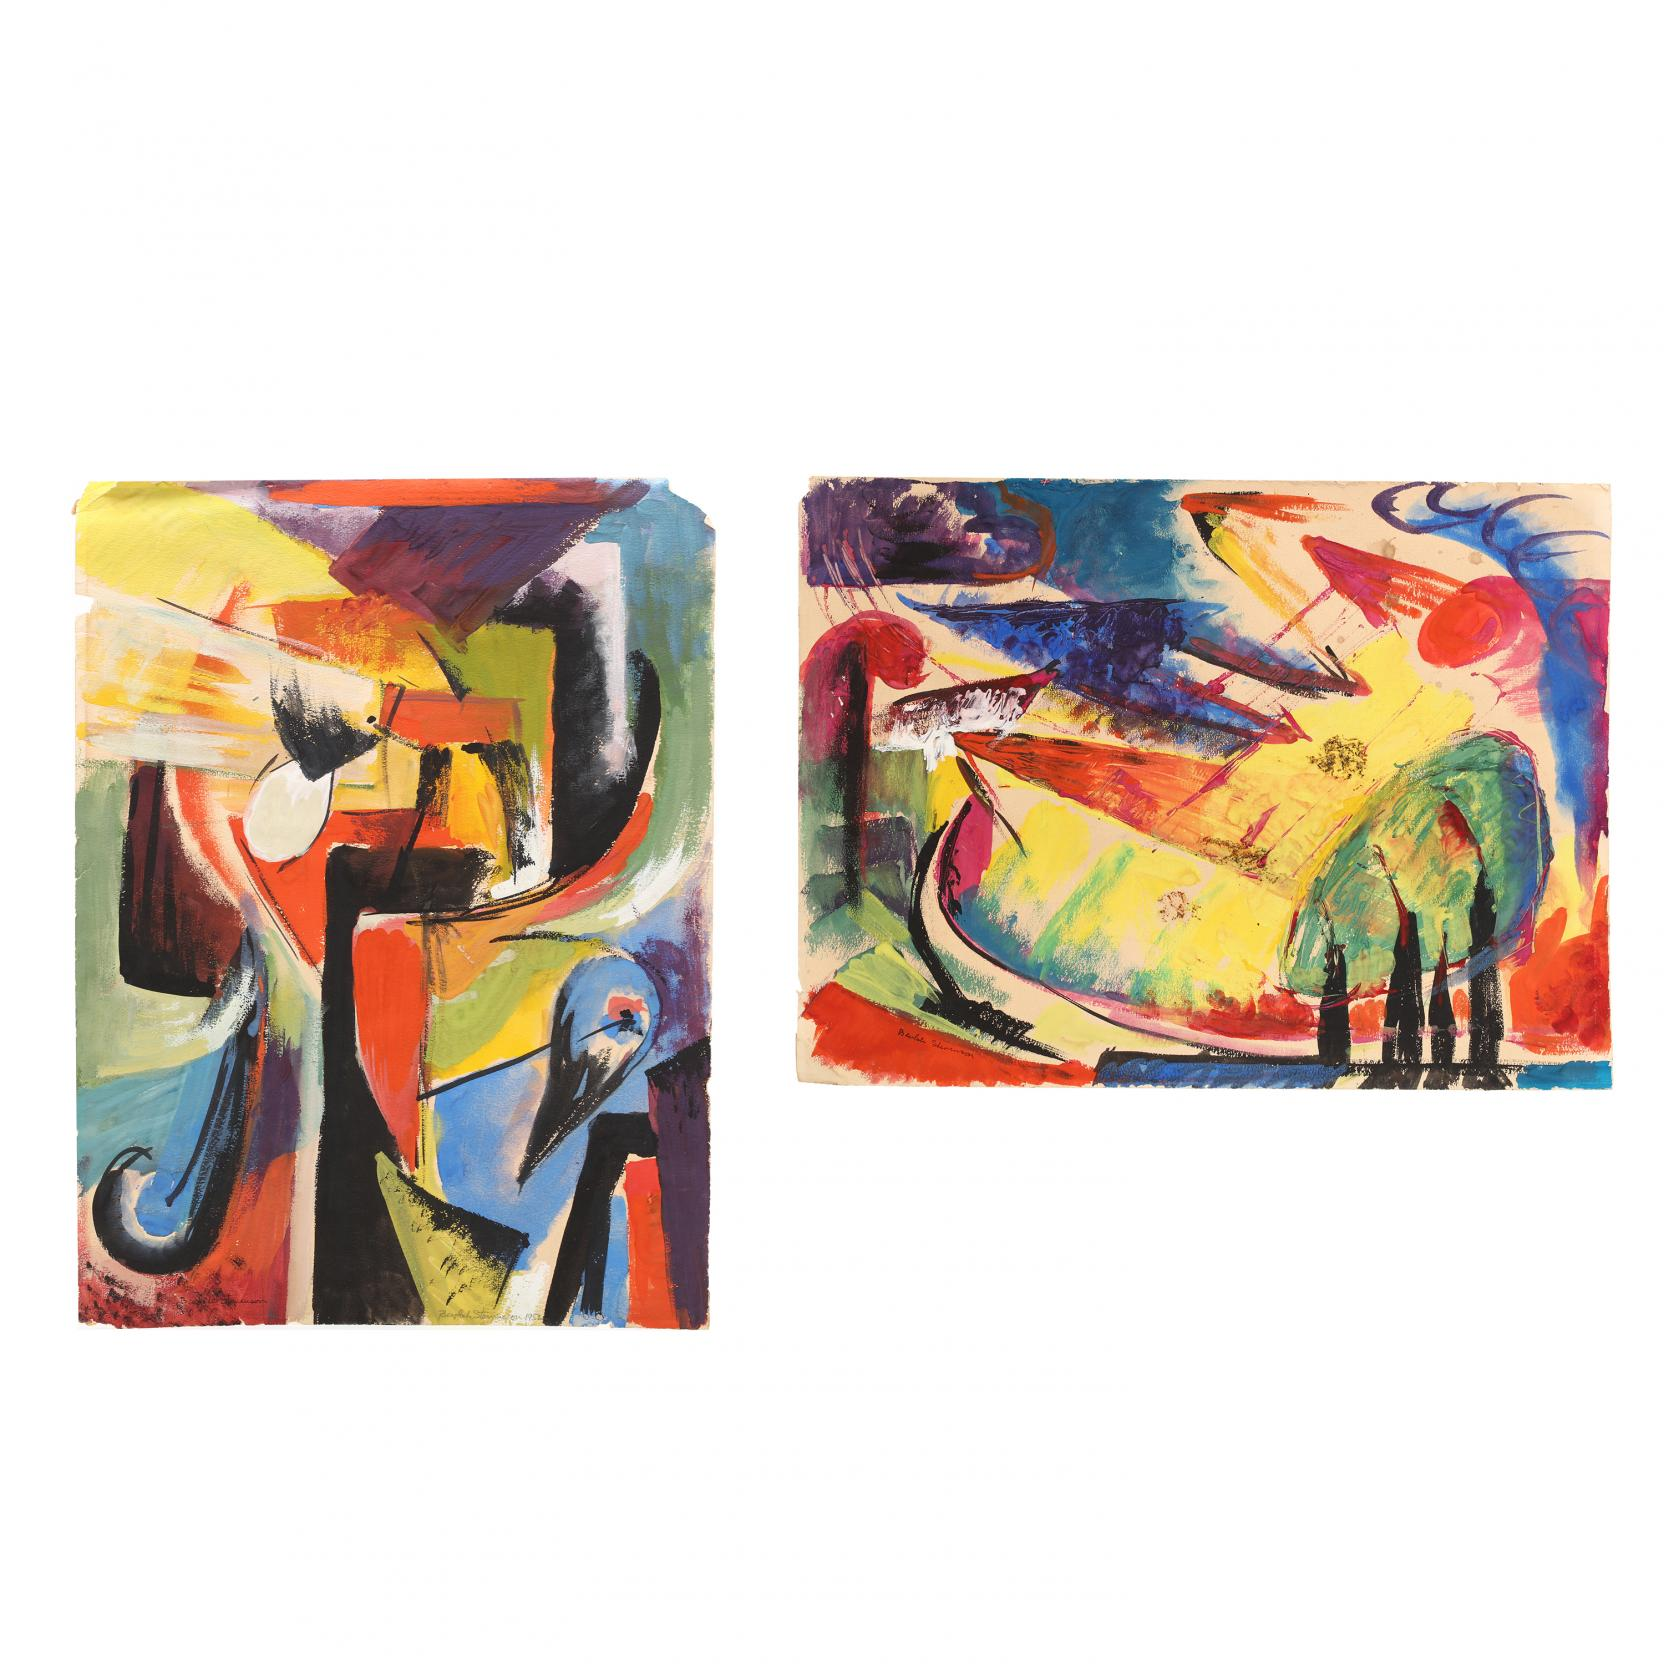 beulah-stevenson-ny-1890-1965-two-signed-abstract-works